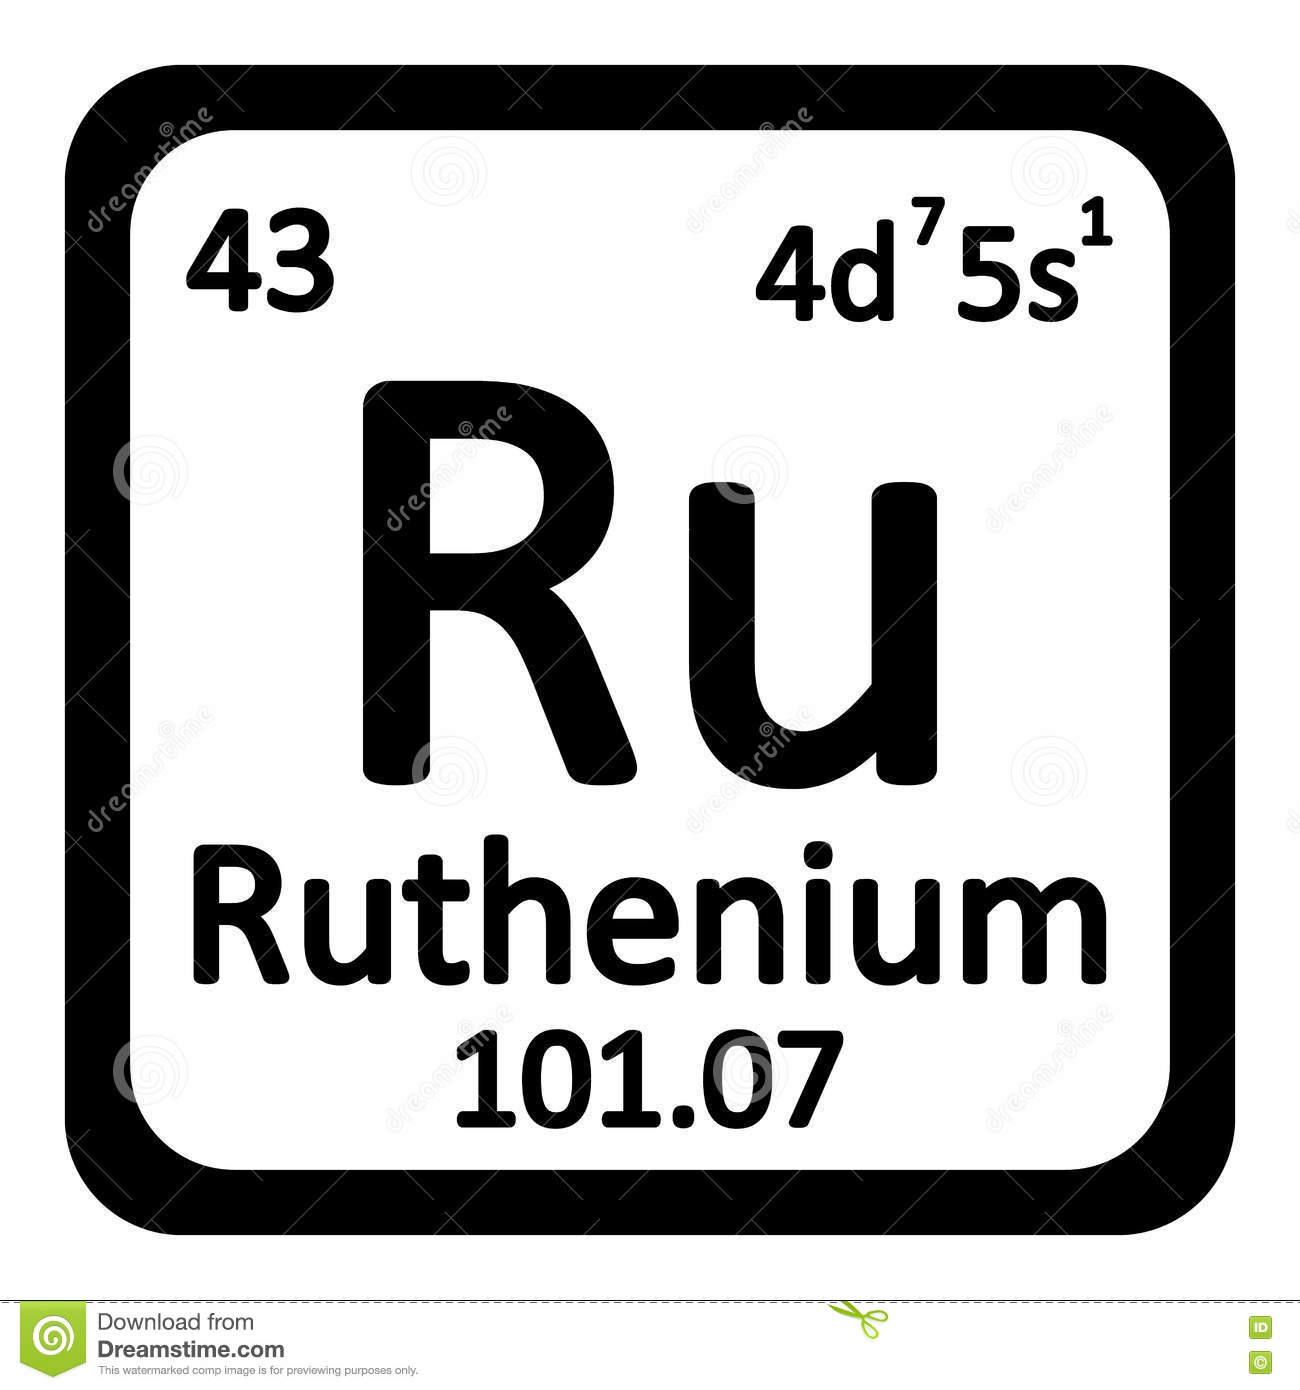 Periodic table element ruthenium icon stock illustration image royalty free illustration download periodic table element ruthenium gamestrikefo Choice Image